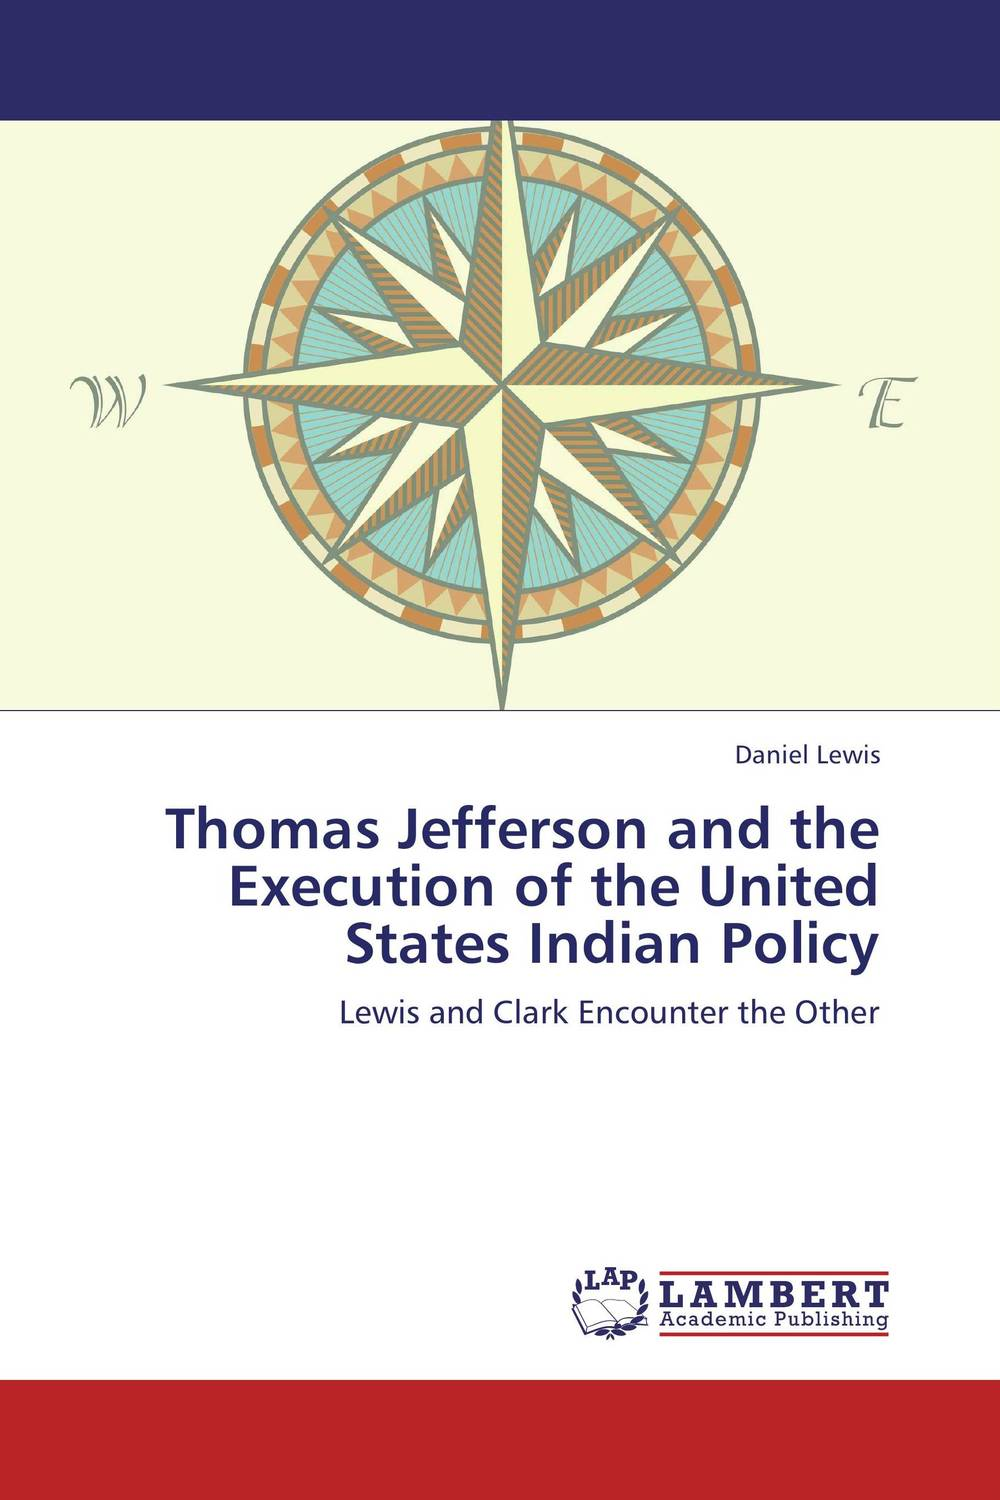 Thomas Jefferson and the Execution of the United States Indian Policy